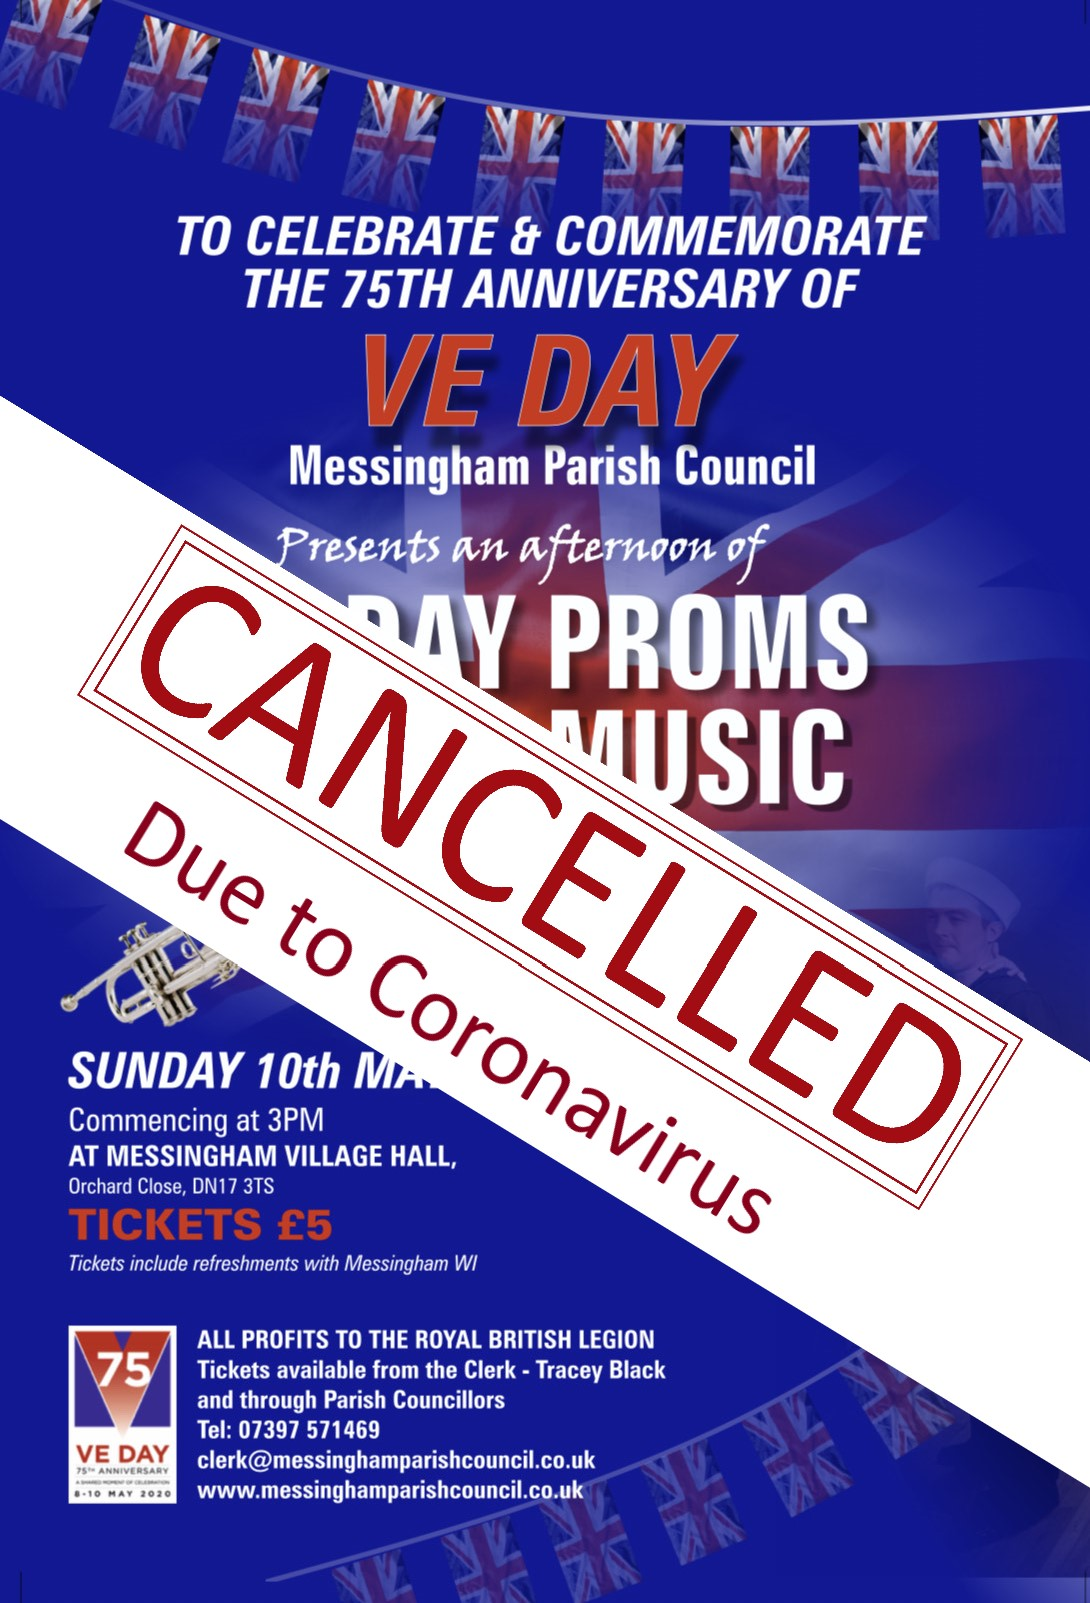 A poster for the Messingham VE Day Proms celebration - cancelled due to the COVID-19 pandemic